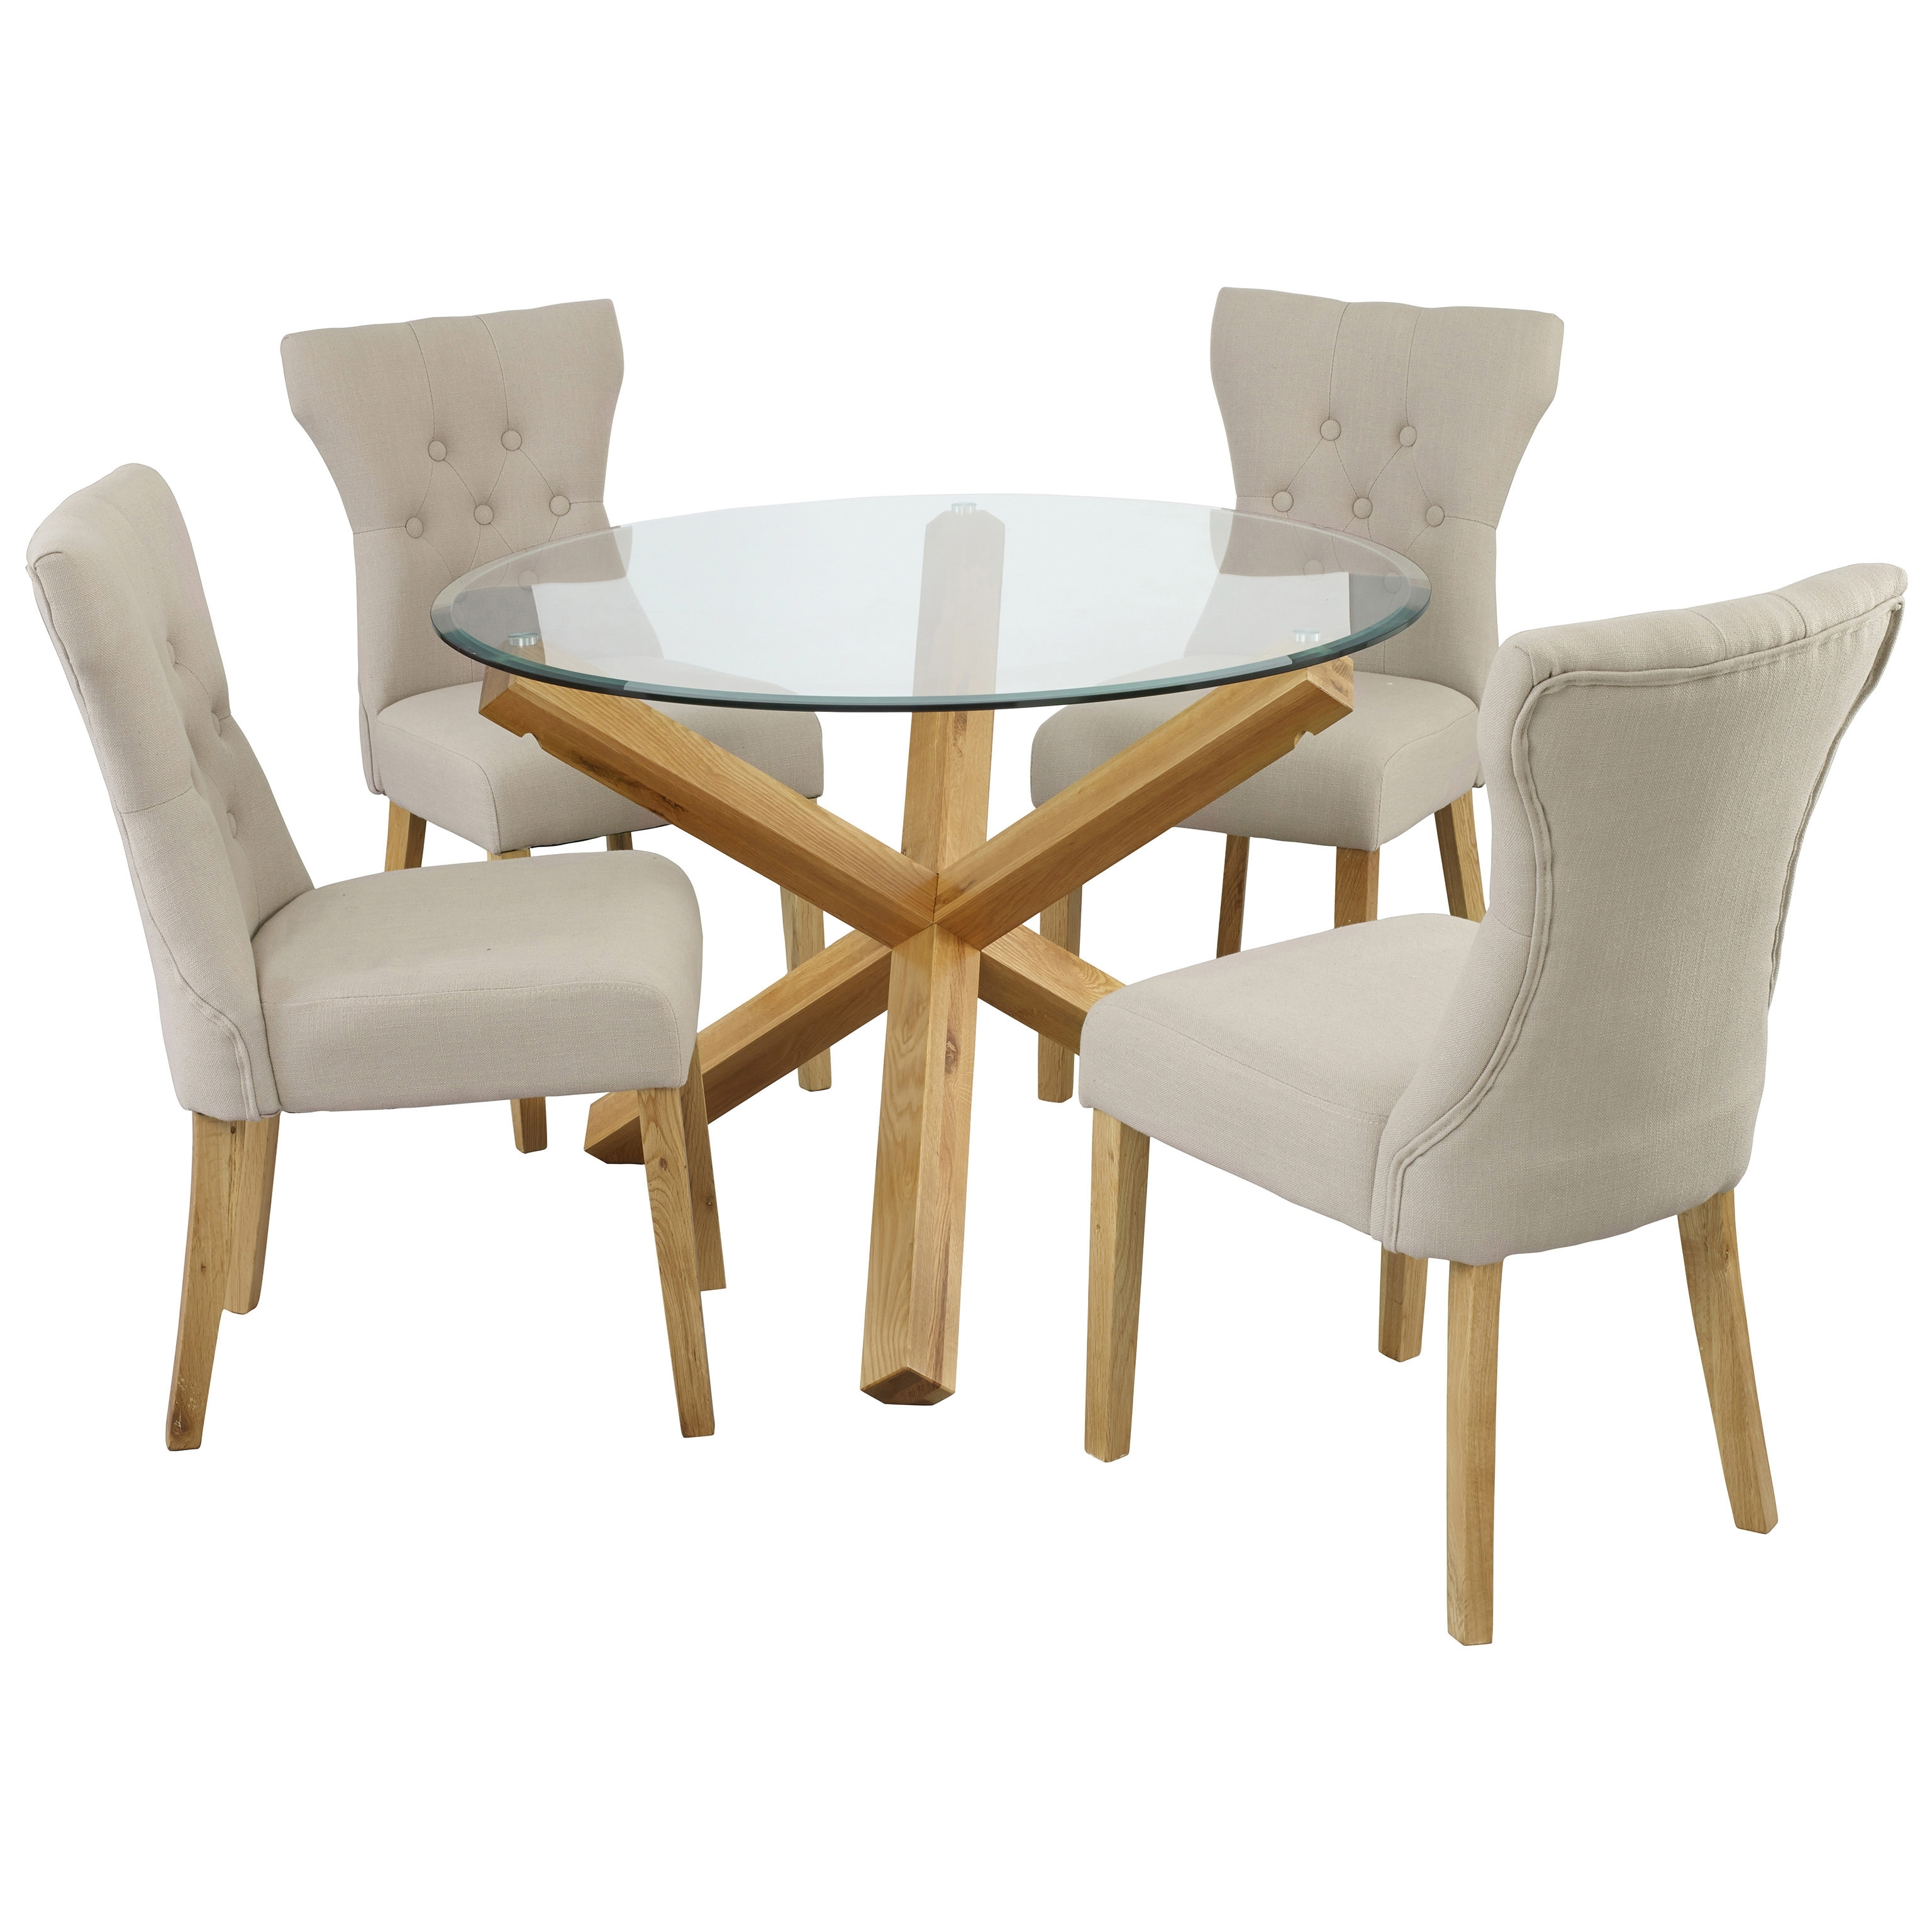 Fashionable Oak & Glass Round Dining Table And Chair Set With 4 Fabric Seats Throughout Oak And Glass Dining Tables Sets (View 2 of 25)